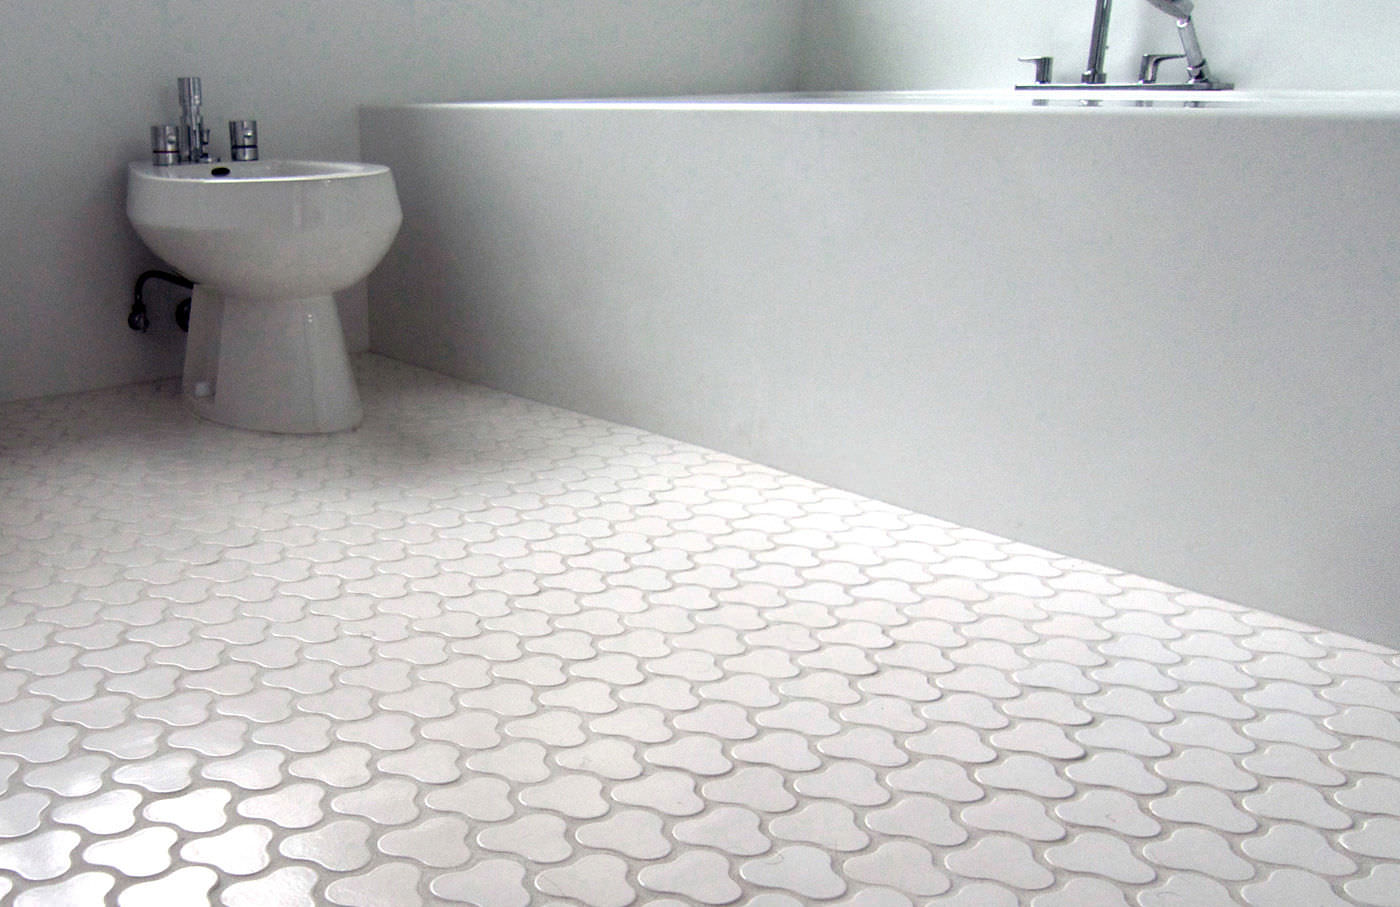 Minimalist Bathroom with Long Bathtub and Toilet on Unique Bathroom Floor Tile near Grey Wall